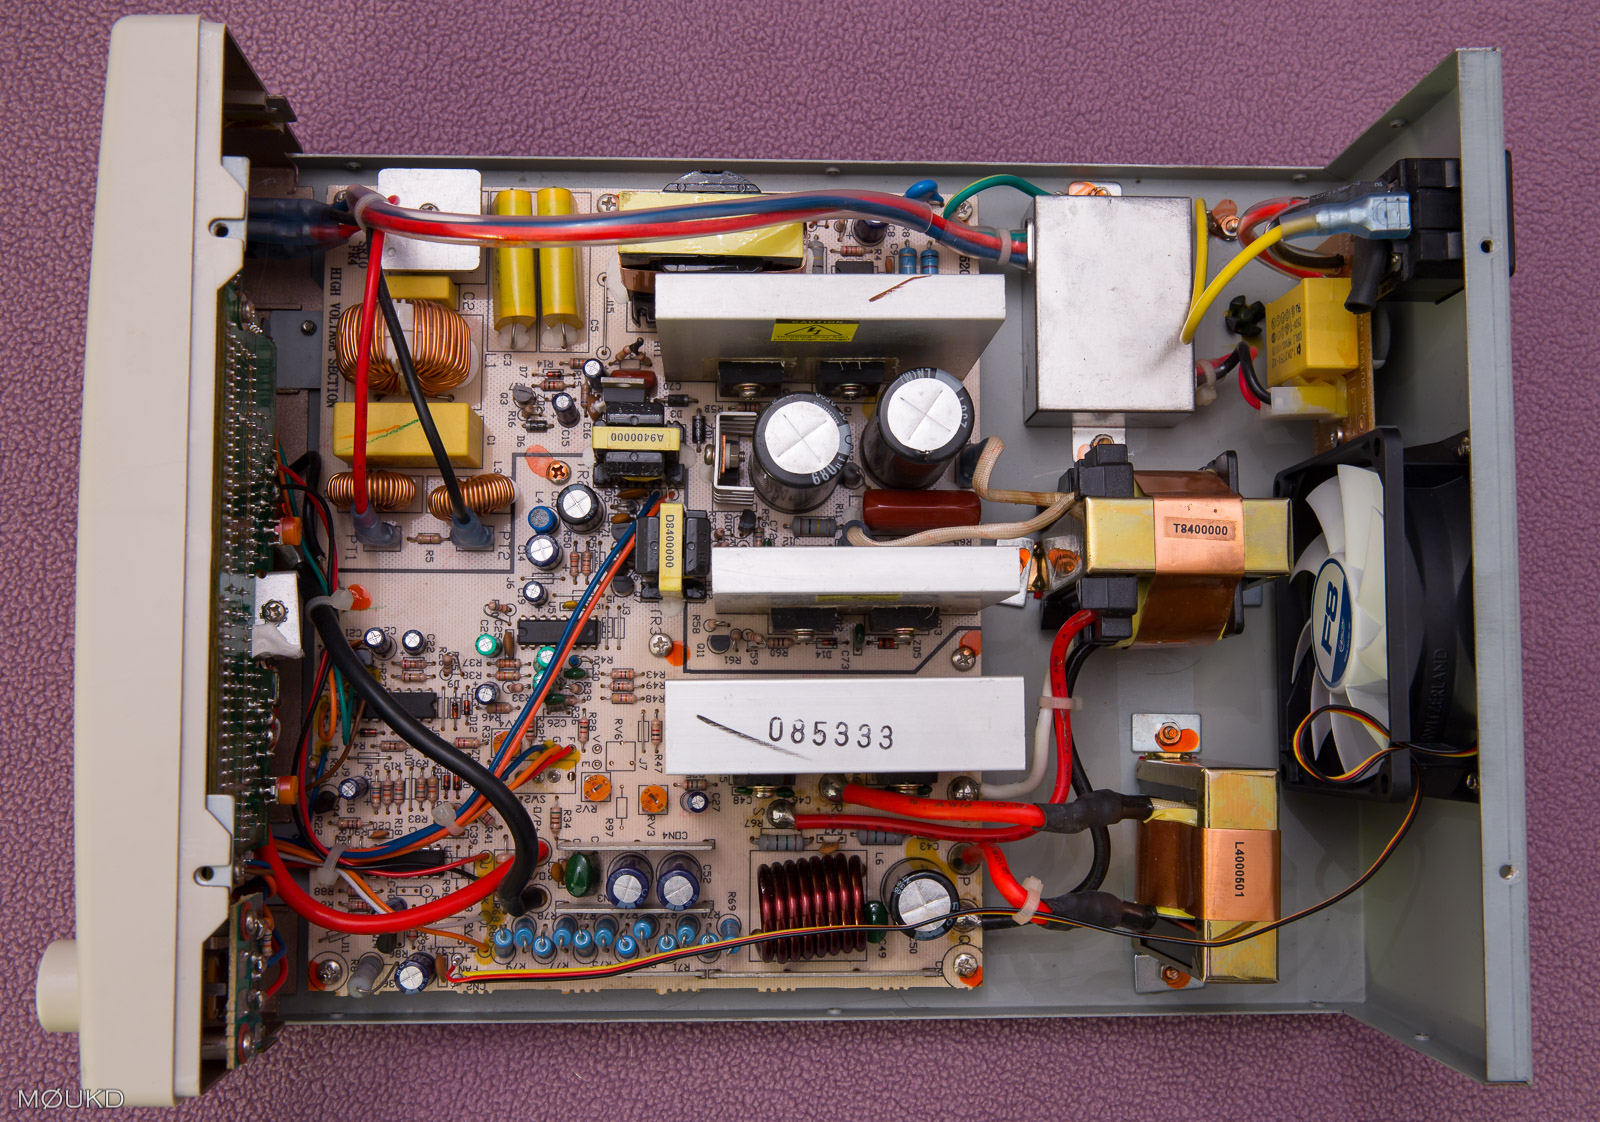 Inside the power supply